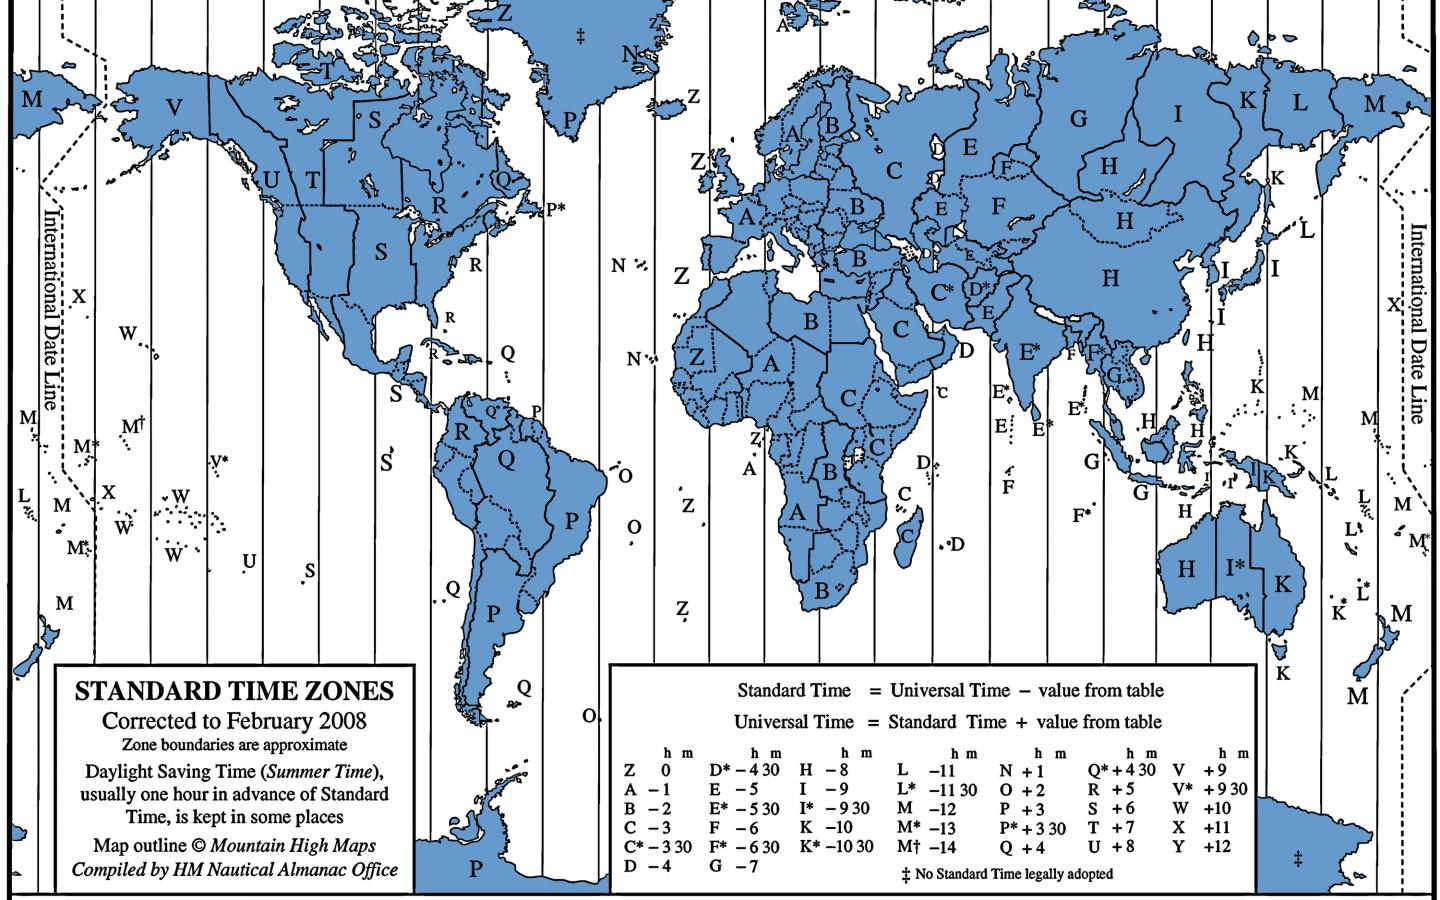 Time Zone Map Of The United States Nations Online Project Current - Map of us time zones during daylight savings